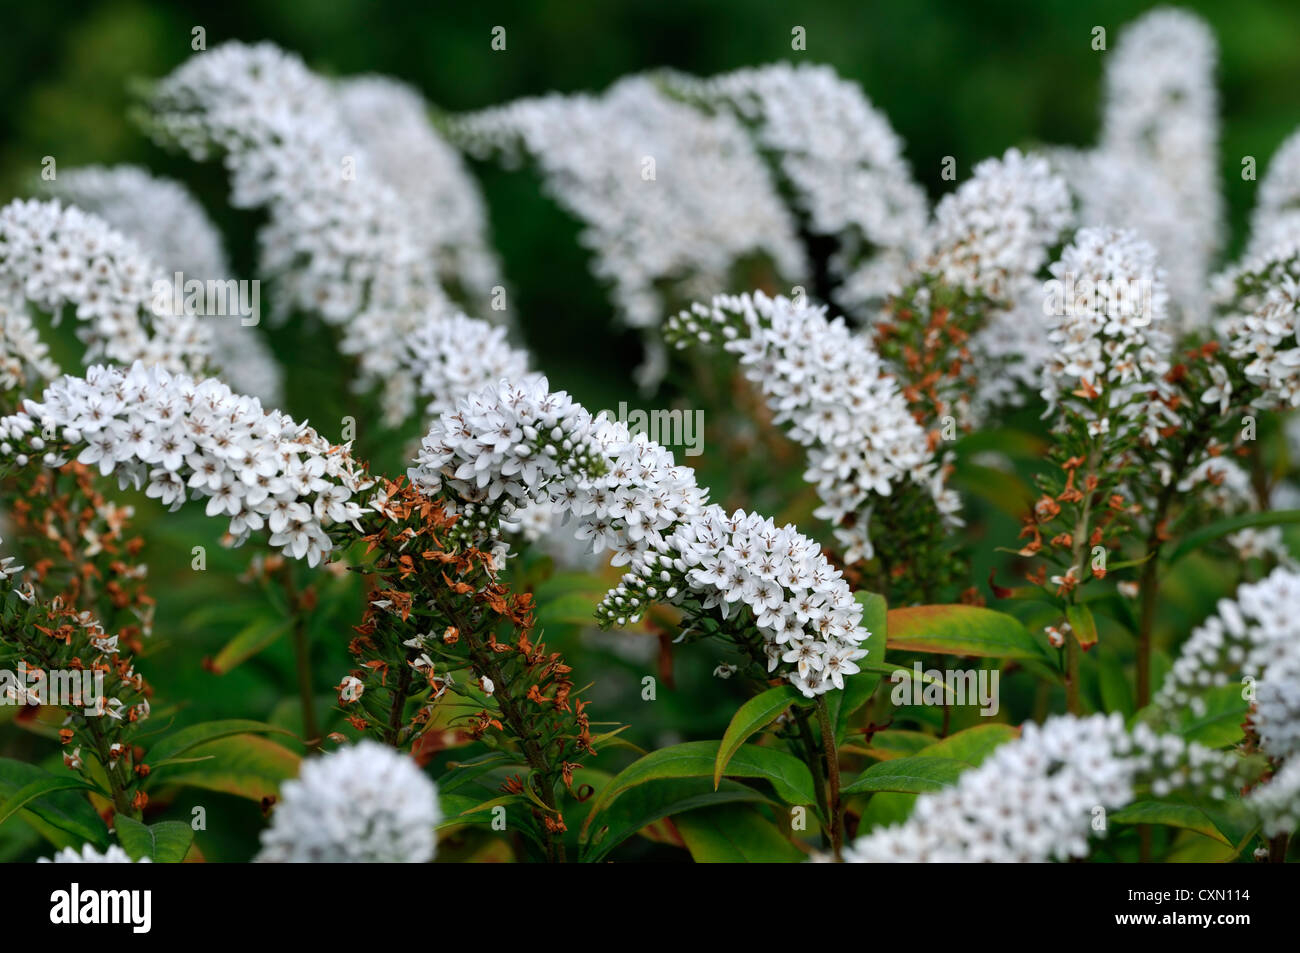 Spike flowers stock photos spike flowers stock images alamy lysimachia barystachys white spire spike flowers flowering perennials spires spikes stock image dhlflorist Image collections